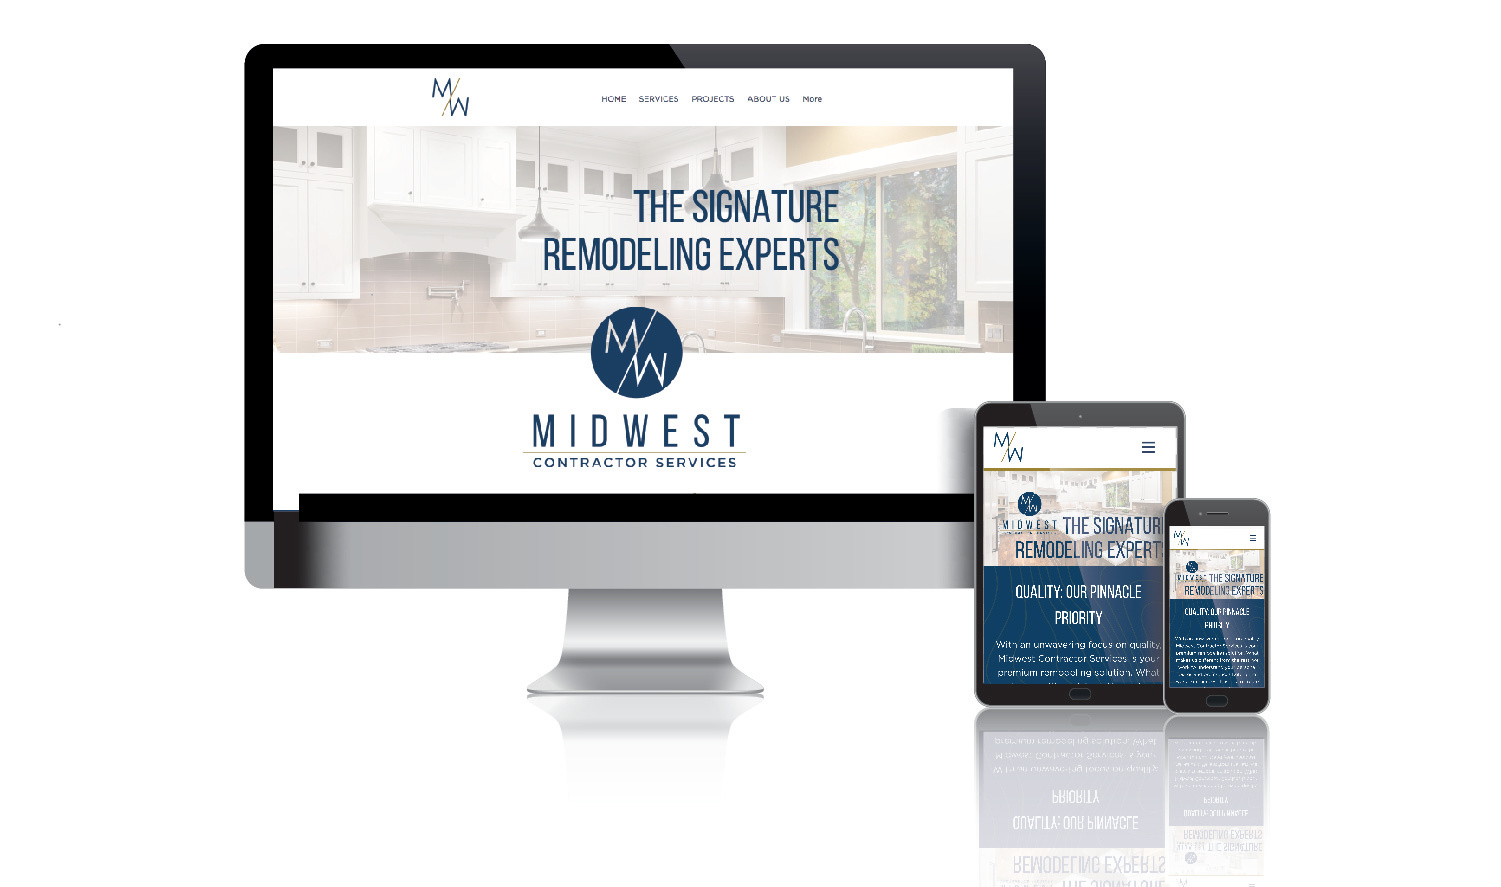 Midwest Contractor Services